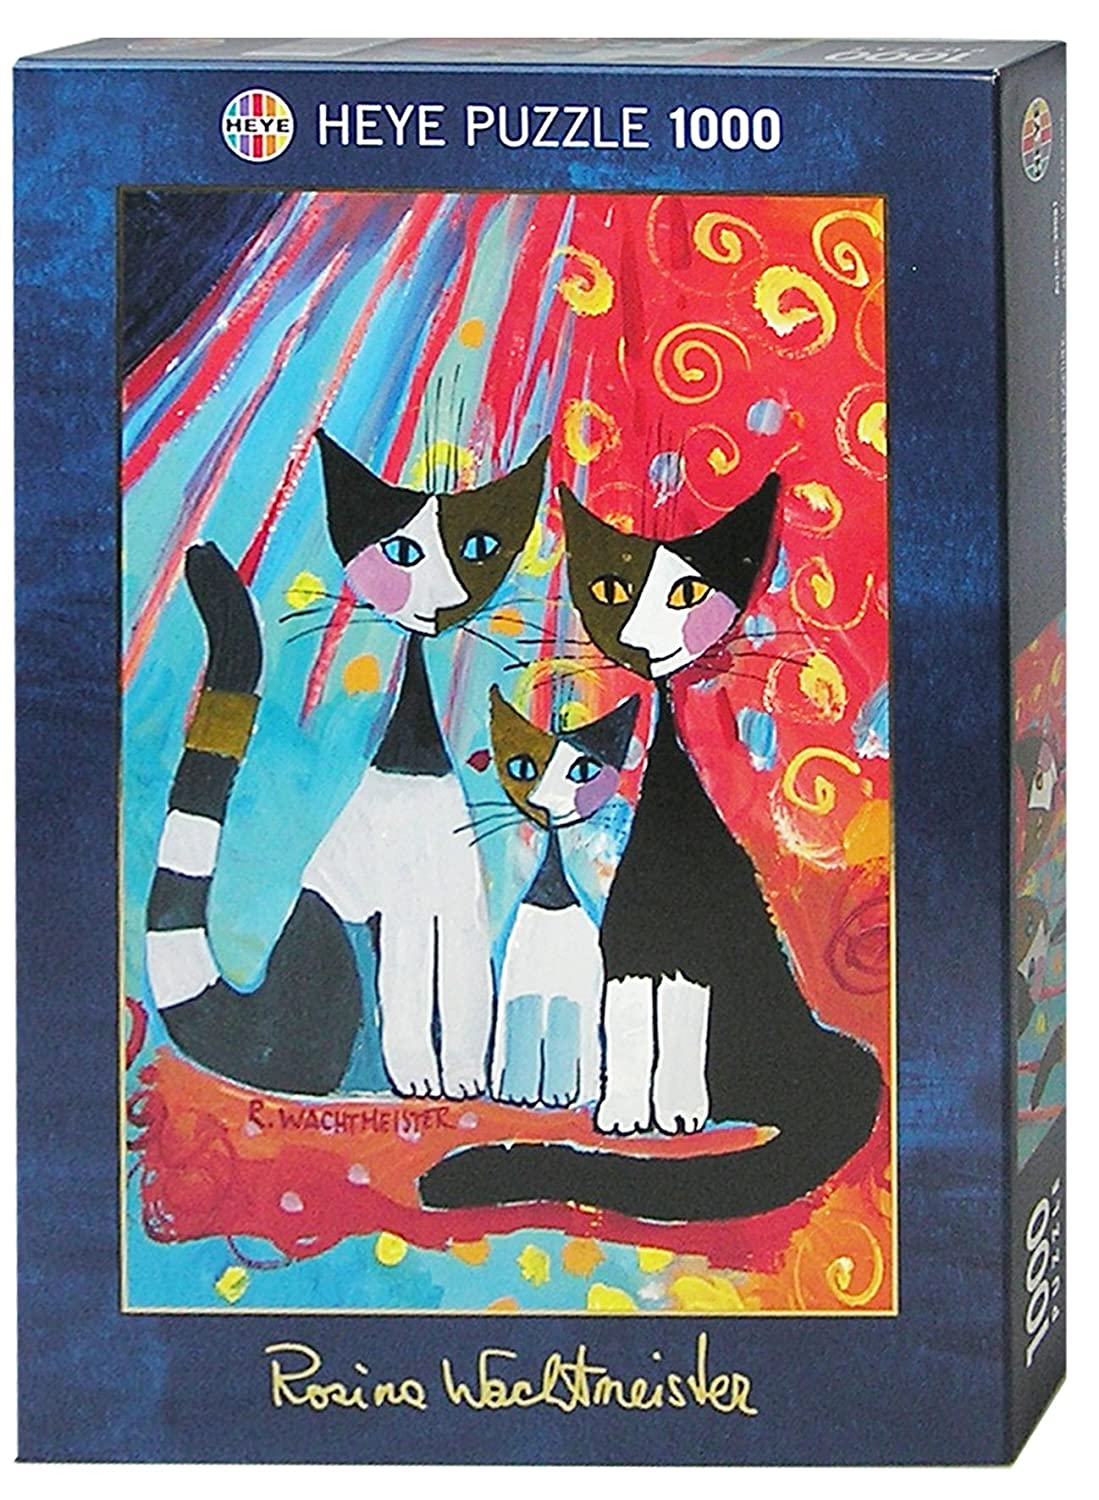 Amazon.com: Heye Rosina Wachtmeister Puzzle 29081 - We Want To Be Together (1000pcs): Toys & Games